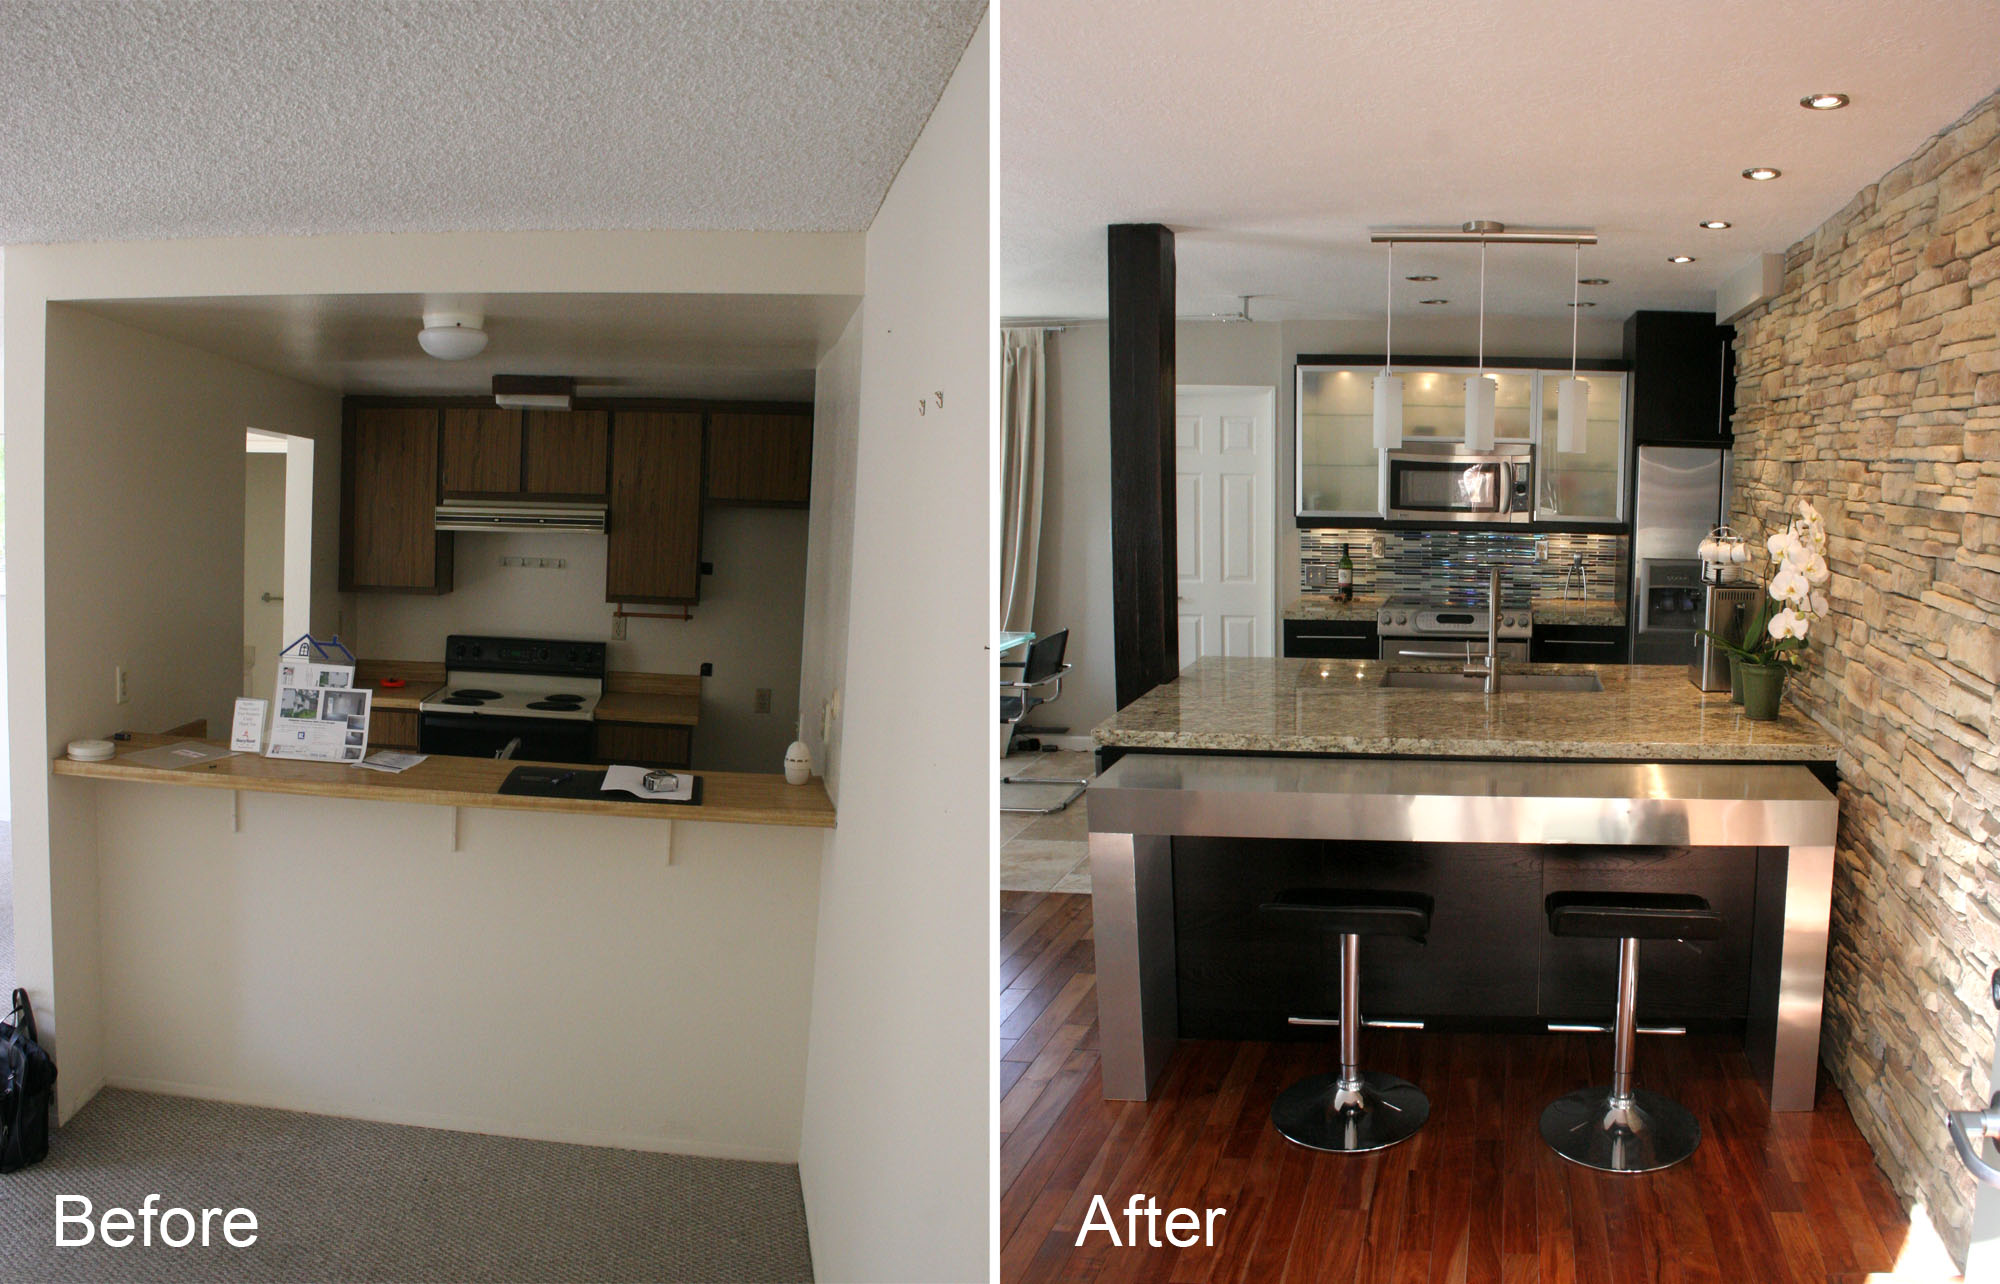 Diy Small Kitchen Refacing Cost Before After